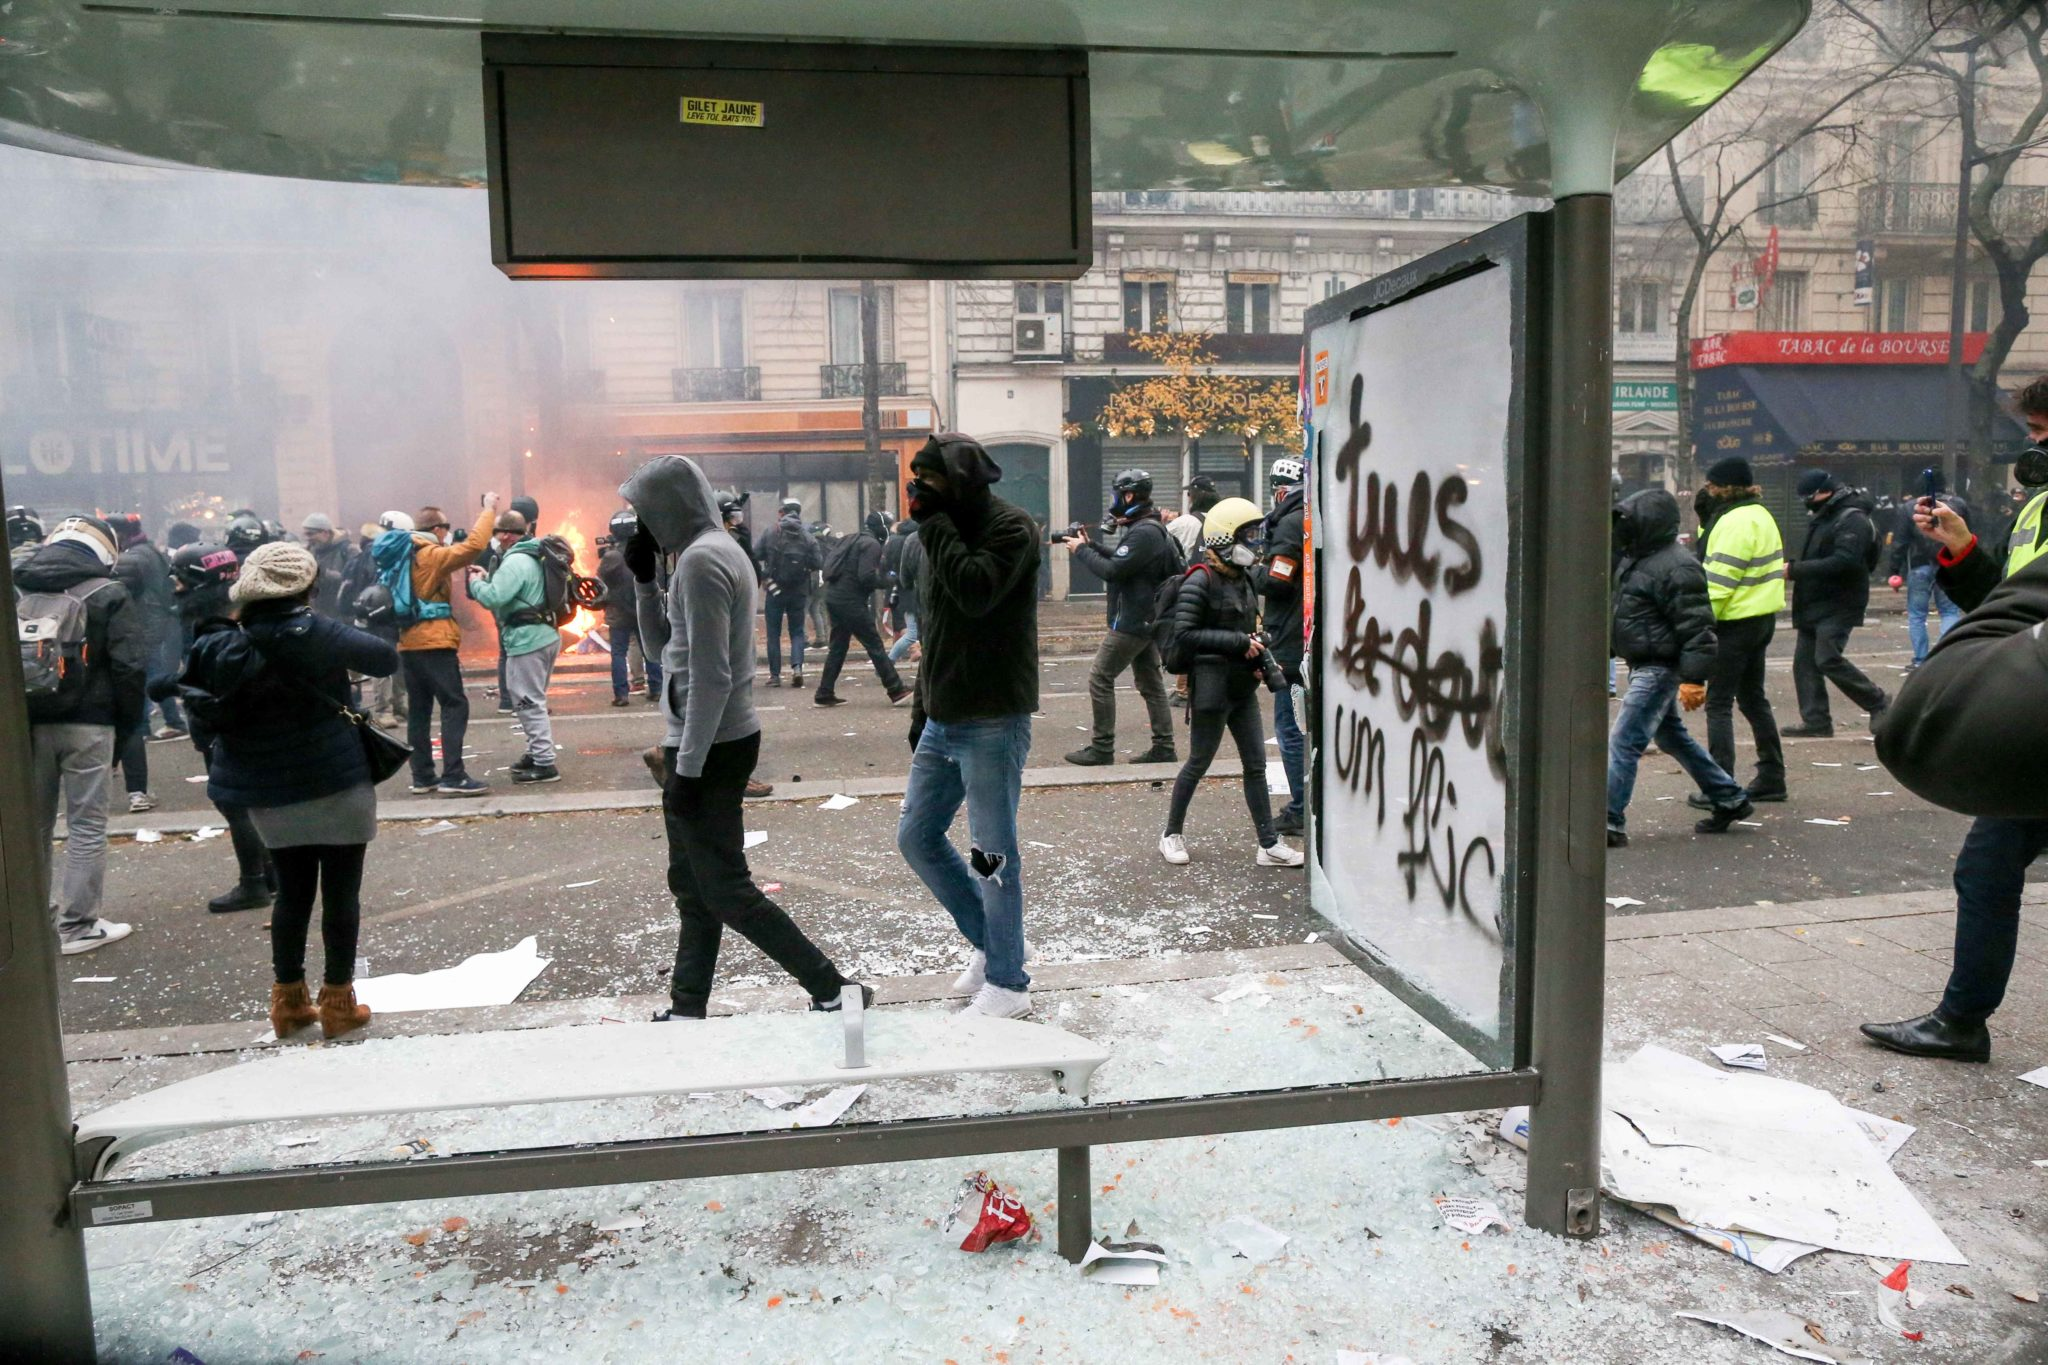 A bus bench is destroyed and tagged with words « Kill a cop » during a demontration to protest against the pension overhauls, in Paris, on December 5, 2019 as part of a national general strike. Trains cancelled, schools closed: France scrambled to make c